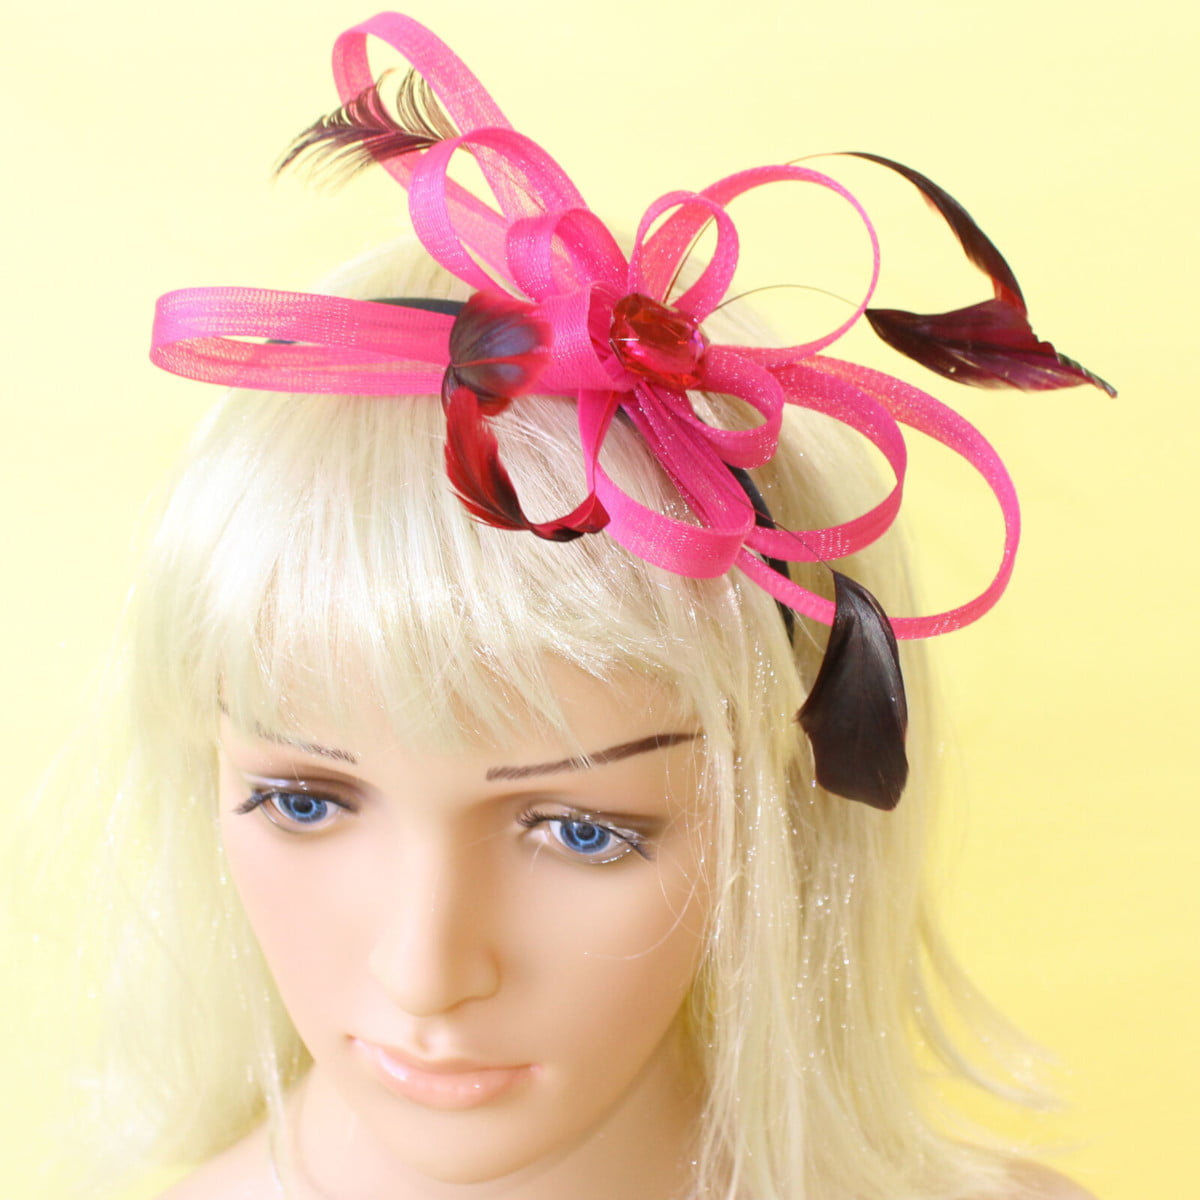 Pink fascinator with loops, gem and feathers on a black aliceband 1